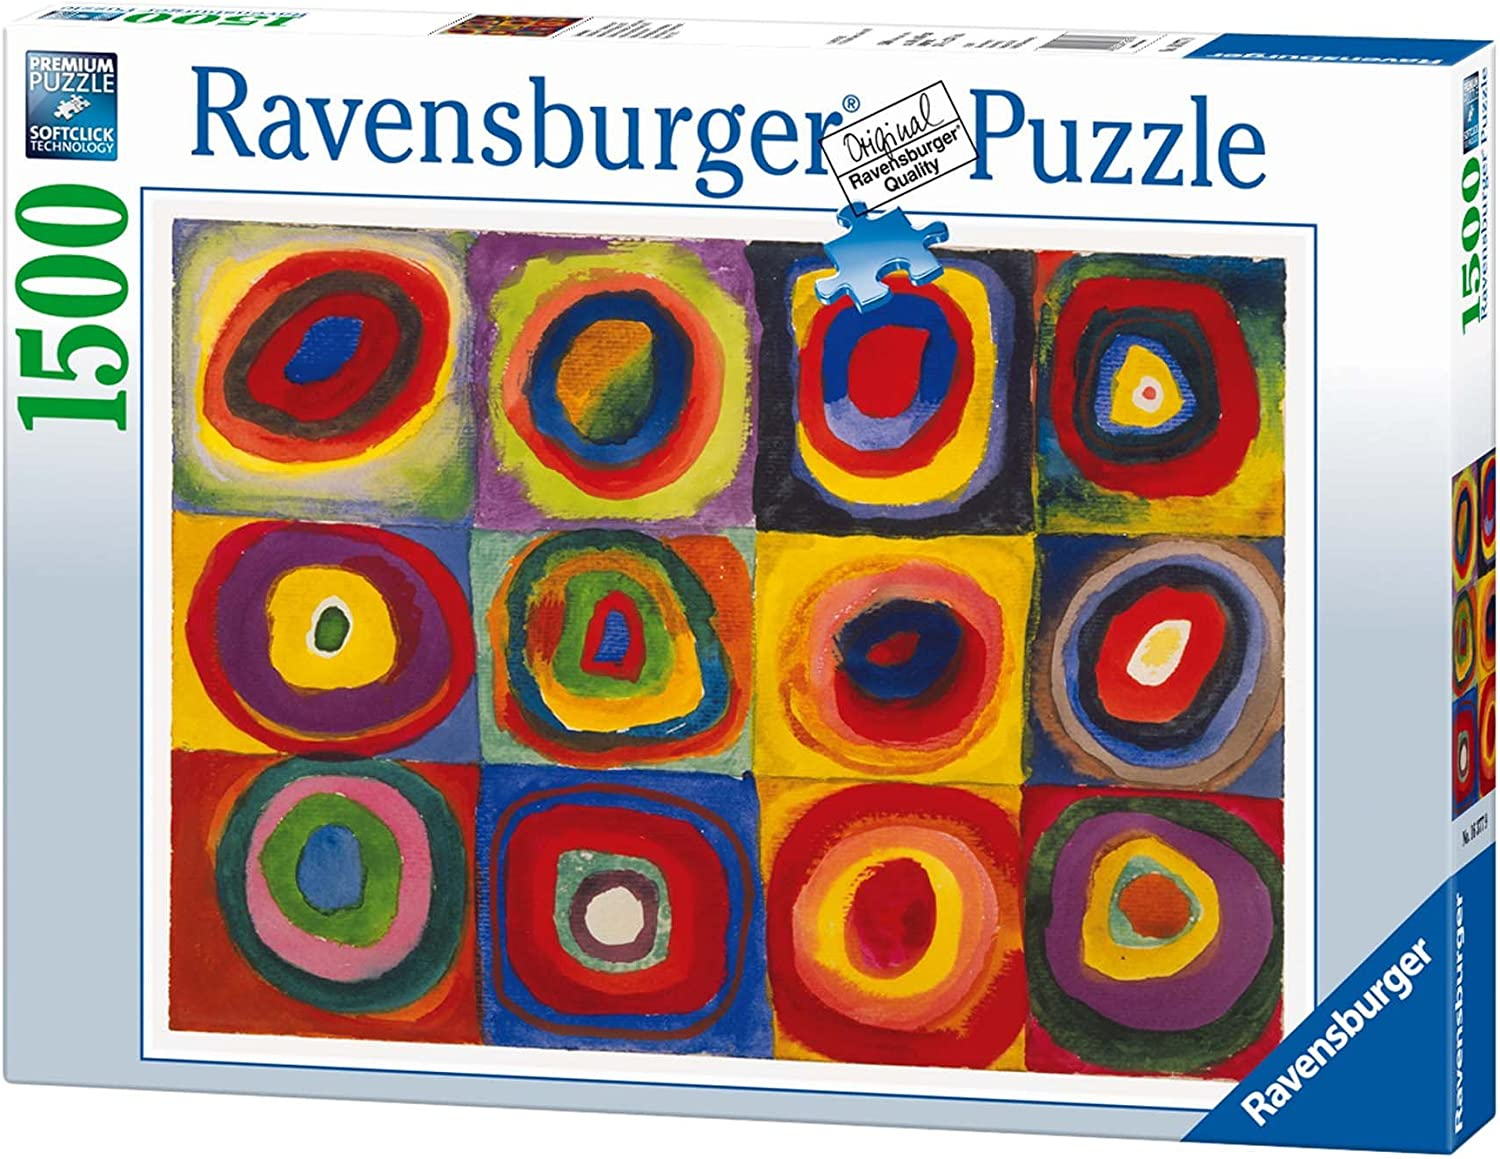 color Study of Squares and Circles, 1913, 1500 Piece Jigsaw Puzzle Made by Ravensburger